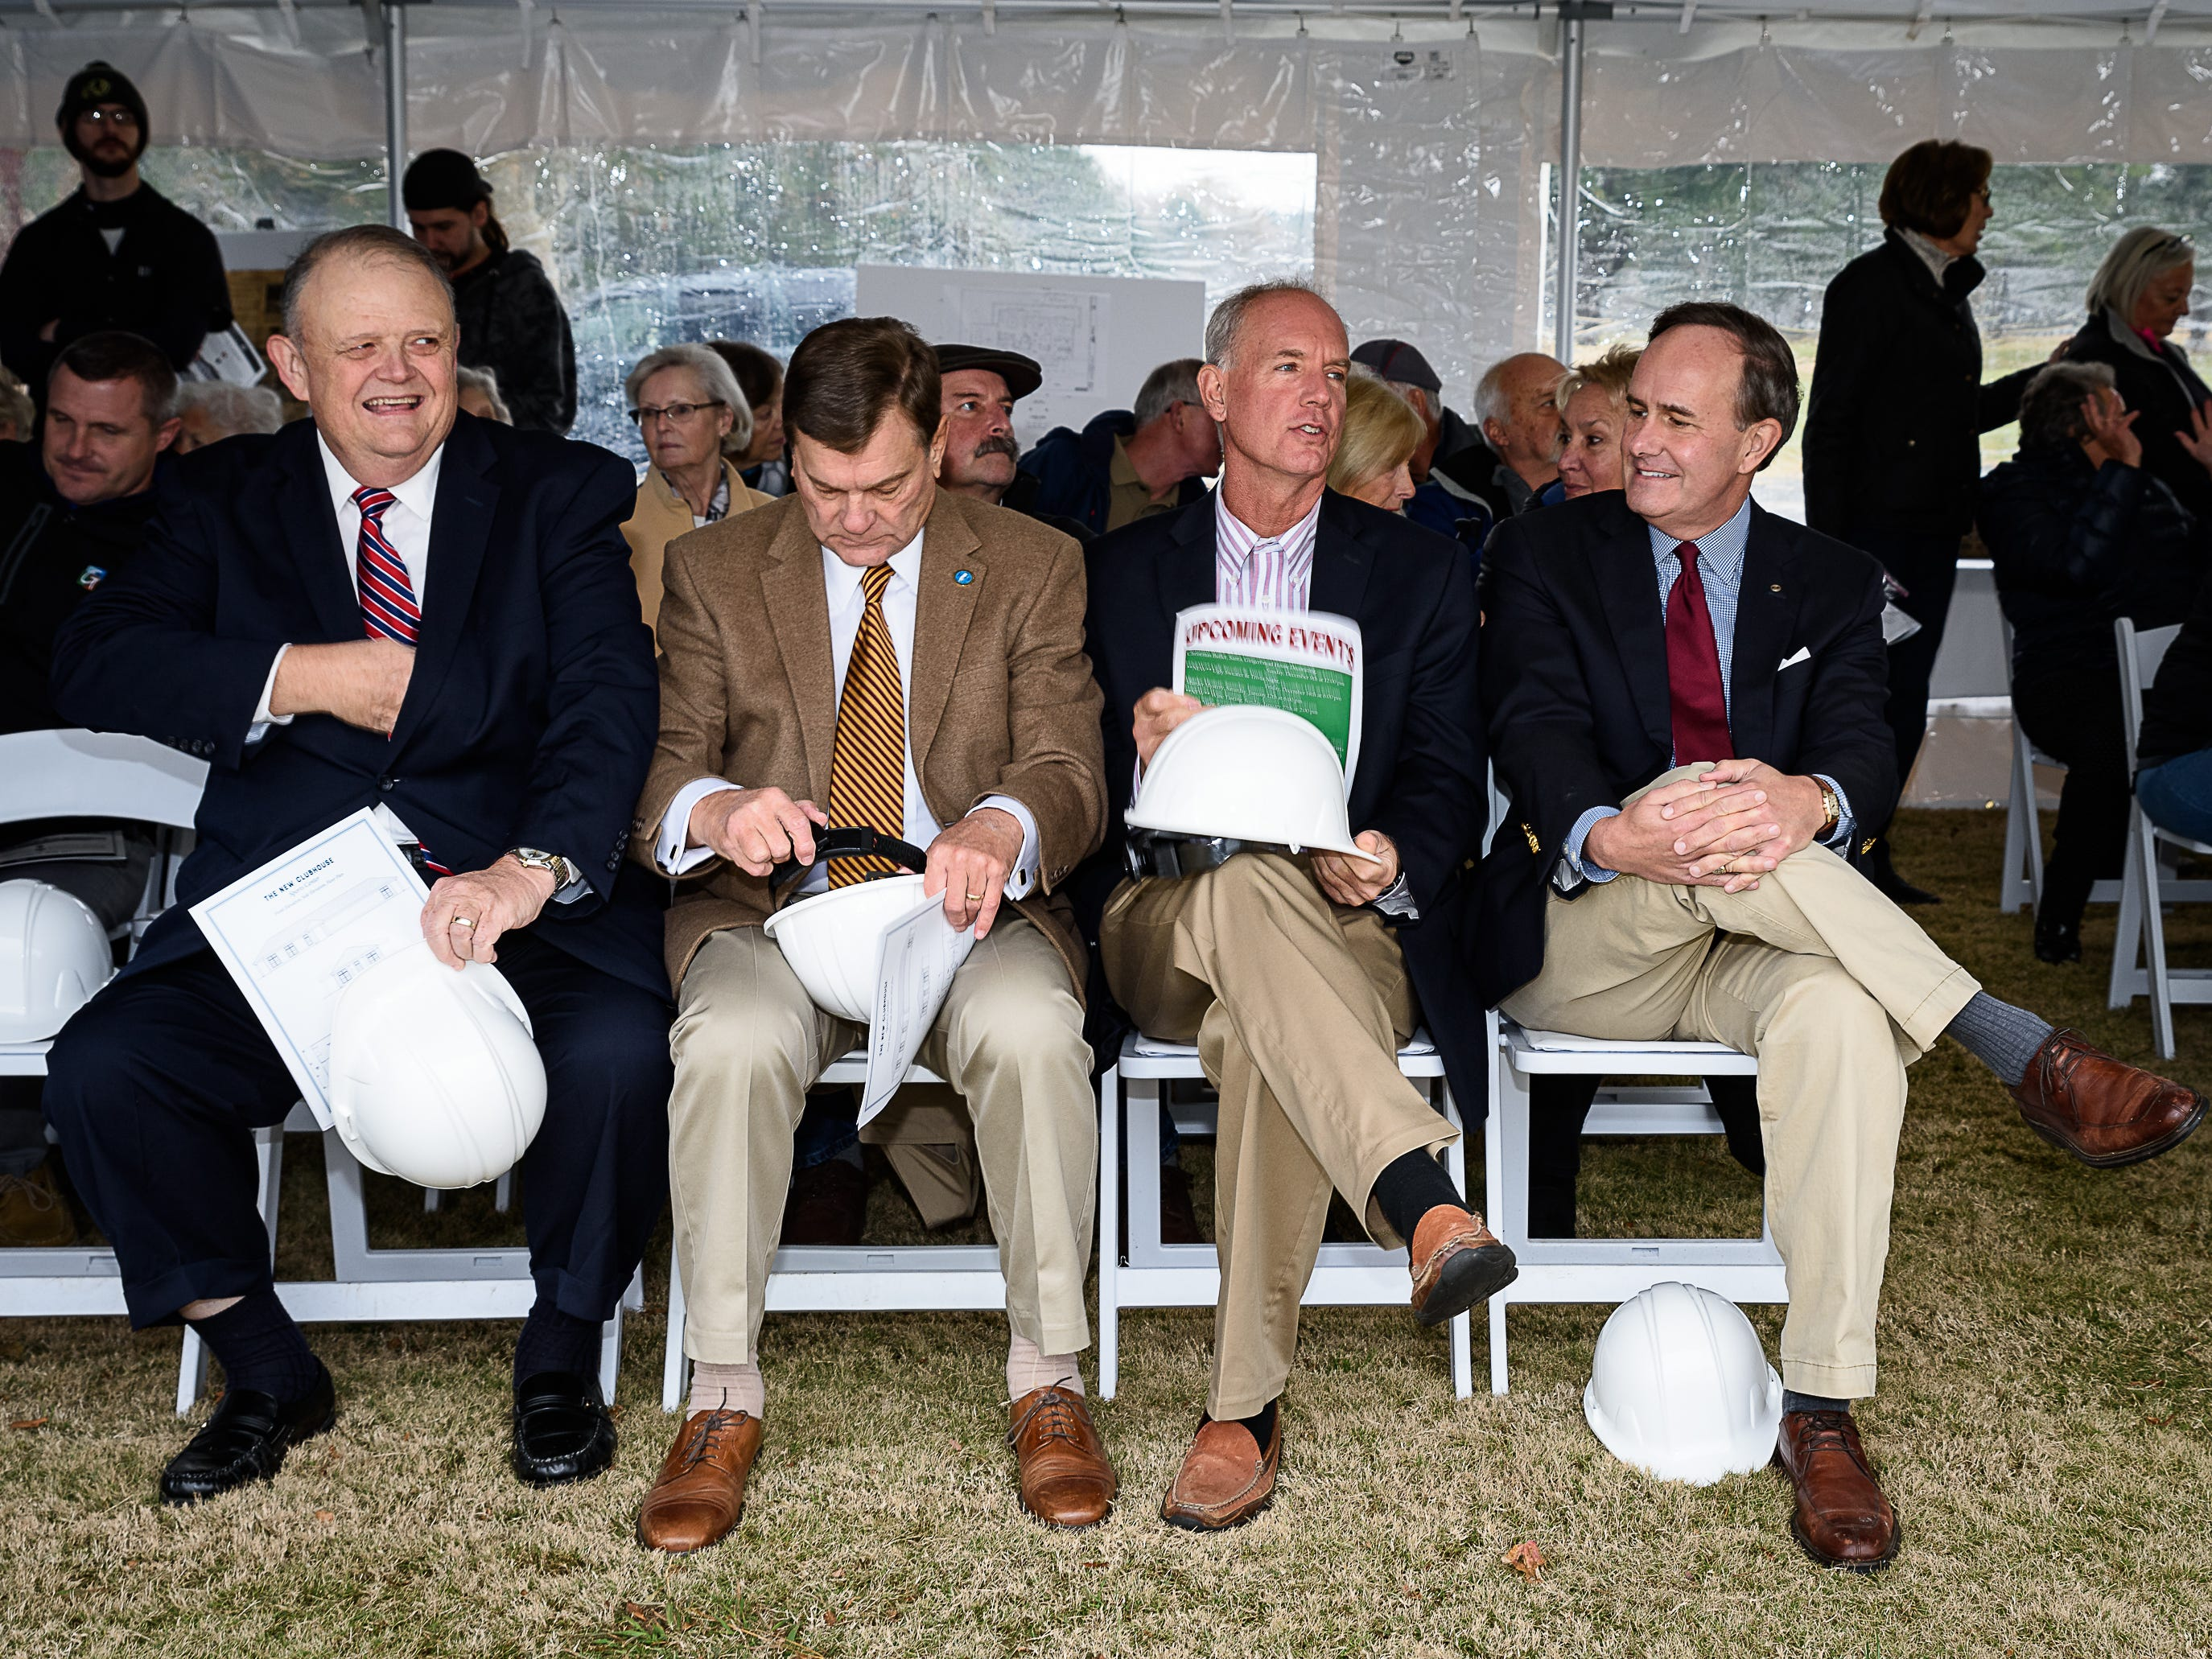 Attending the groundbreaking for the new clubhouse in Melfa are, from left, Accomack County Supervisor Donald Hart, Northampton County Supervisor Spencer Murray, State Delegate Bob Bloxom Jr. and State Sen. Lynwood Lewis Jr.